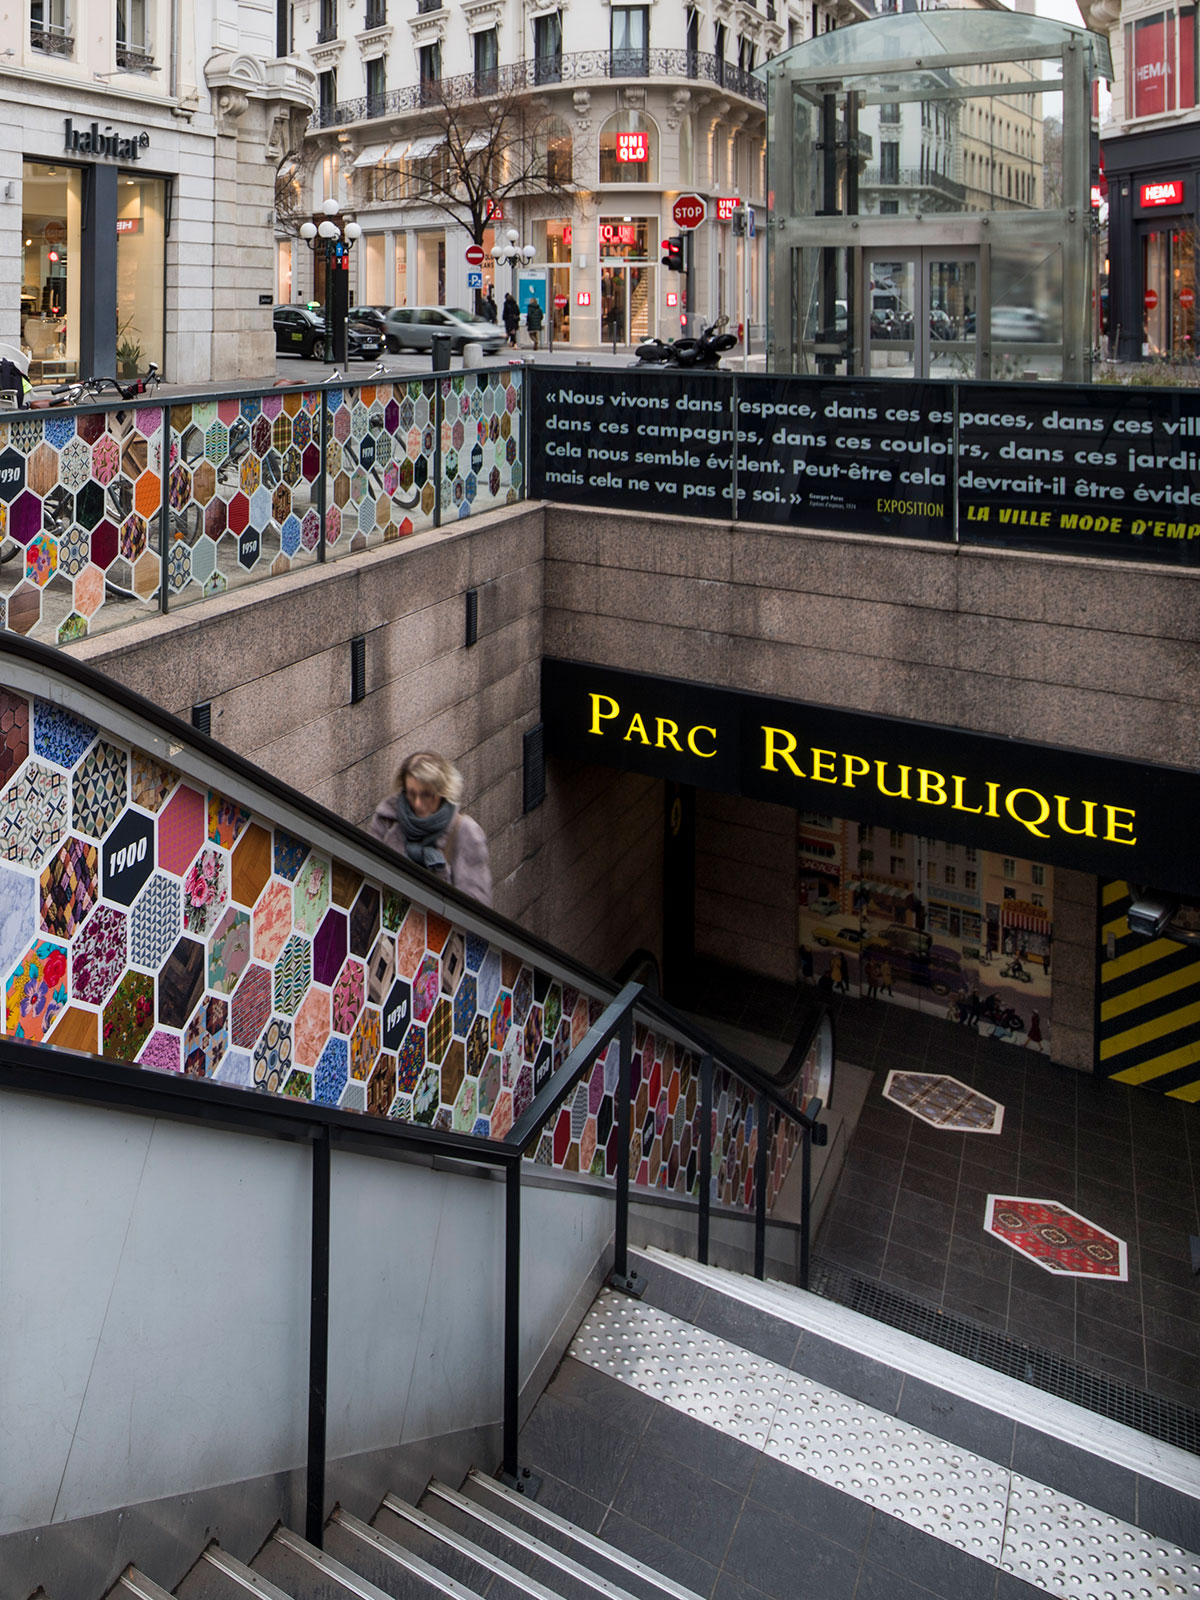 lpa_parc_republique_2_1.jpg